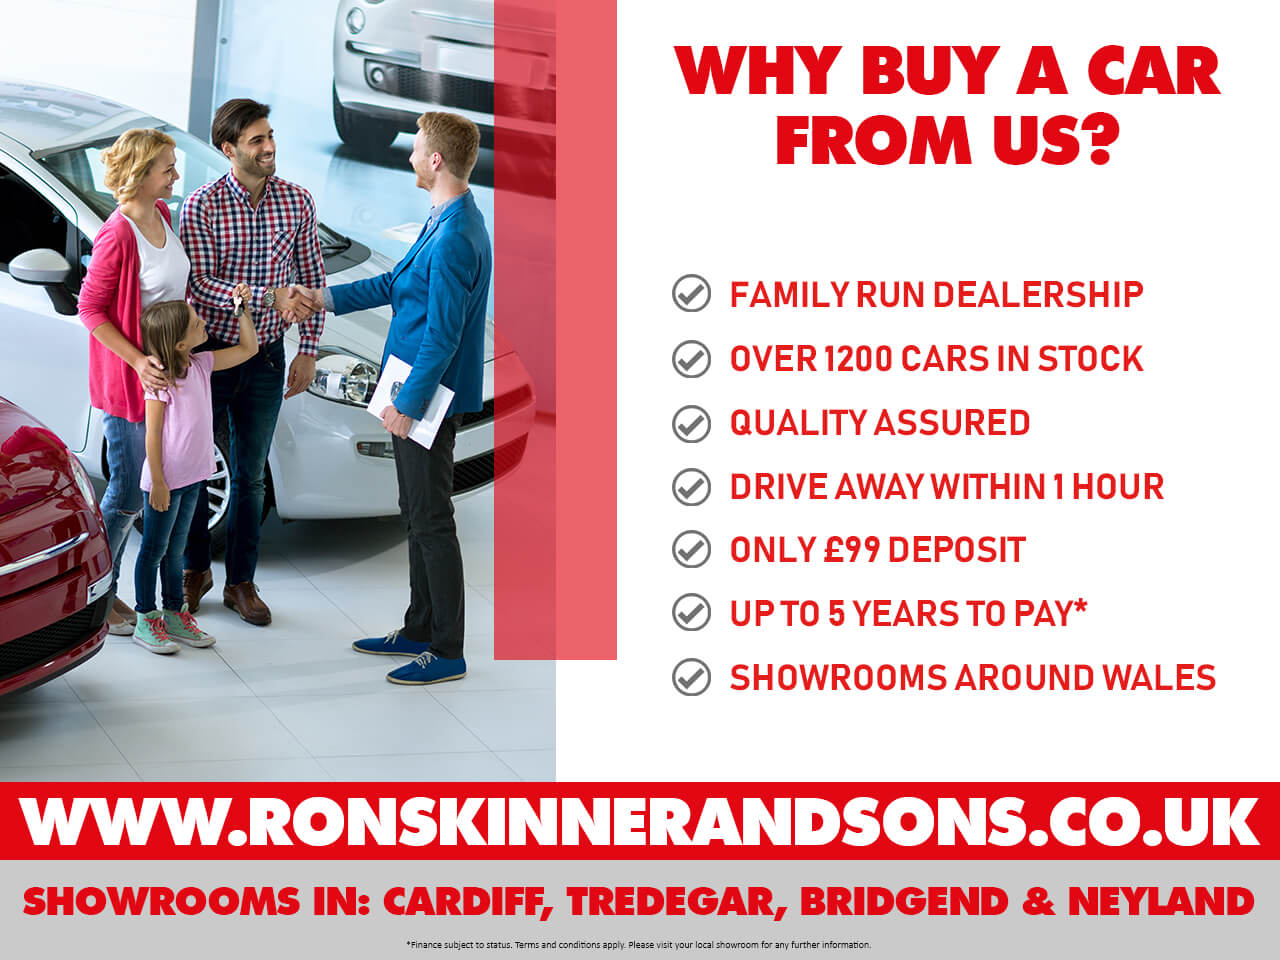 CITROEN C1 at Ron Skinner and Sons